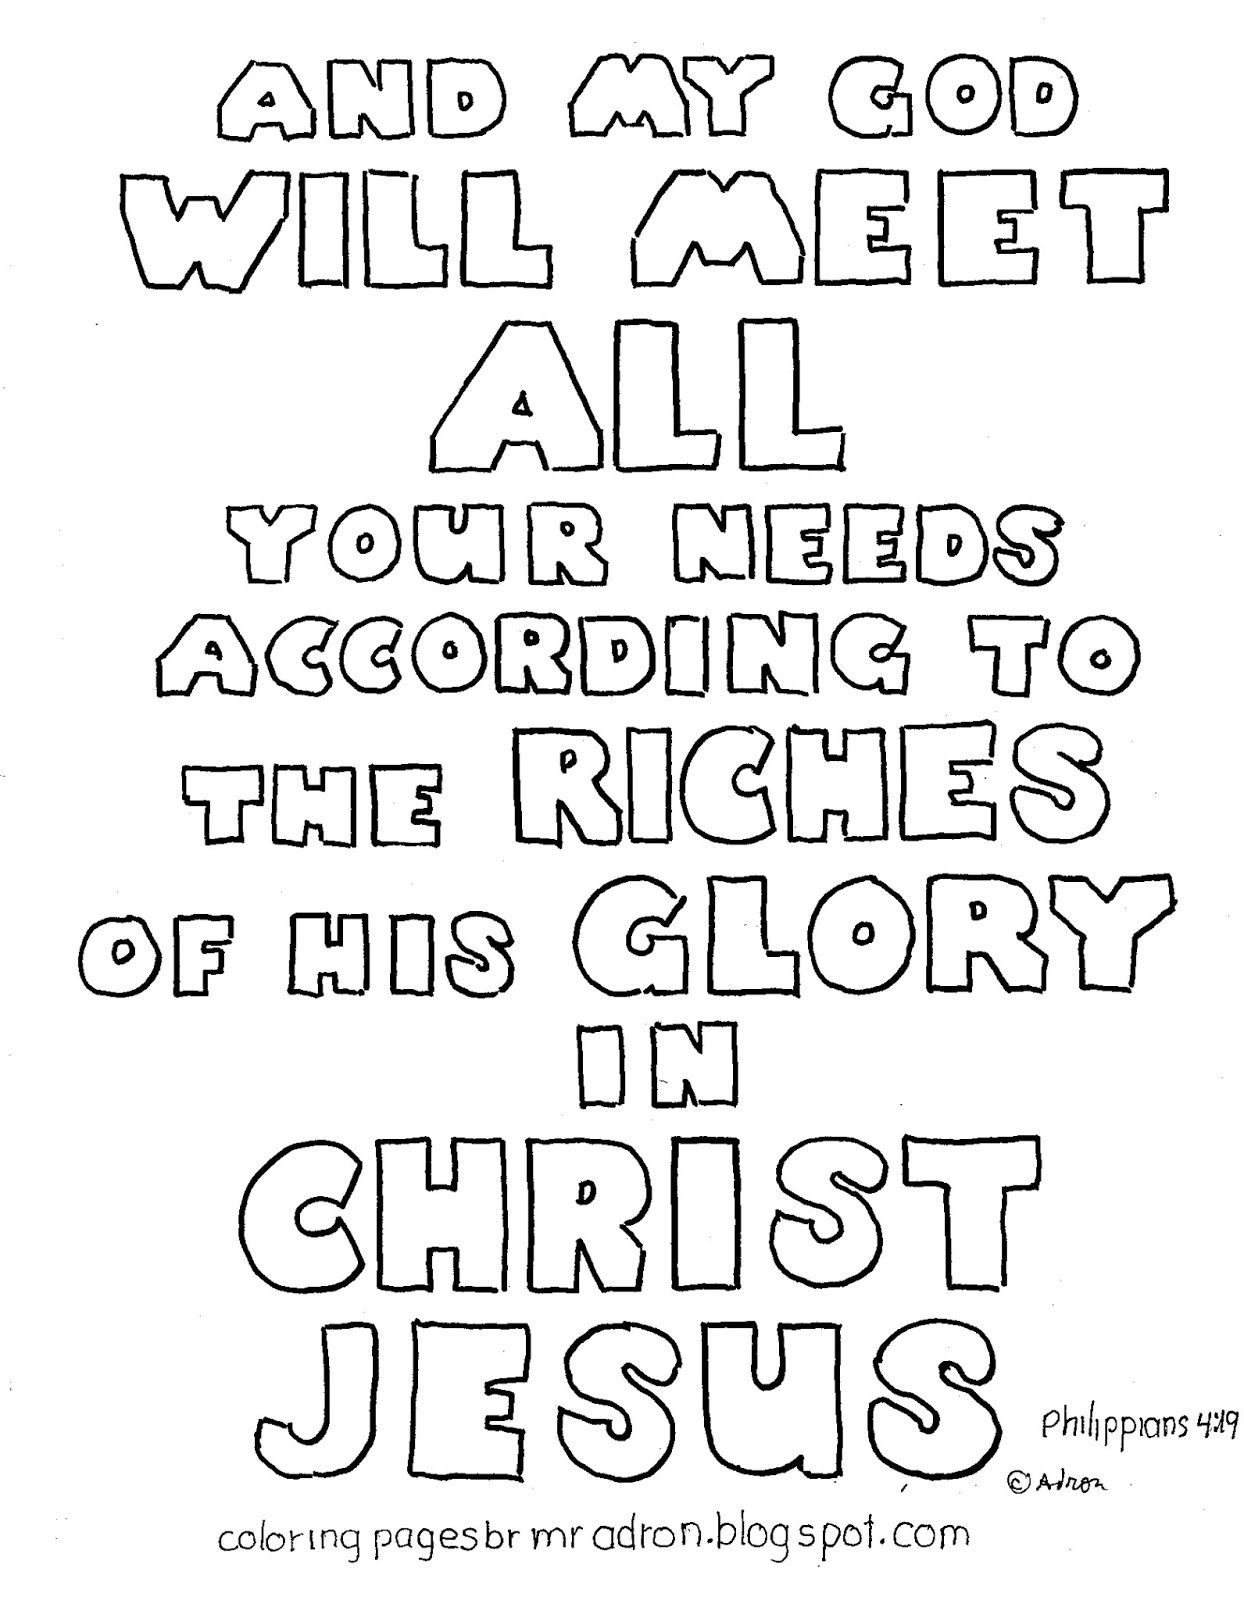 A Bible Verse Picture For The Kids To Color Coloring Pages By Mr Adron Free Philippians 419 Vese Page See More At Blog